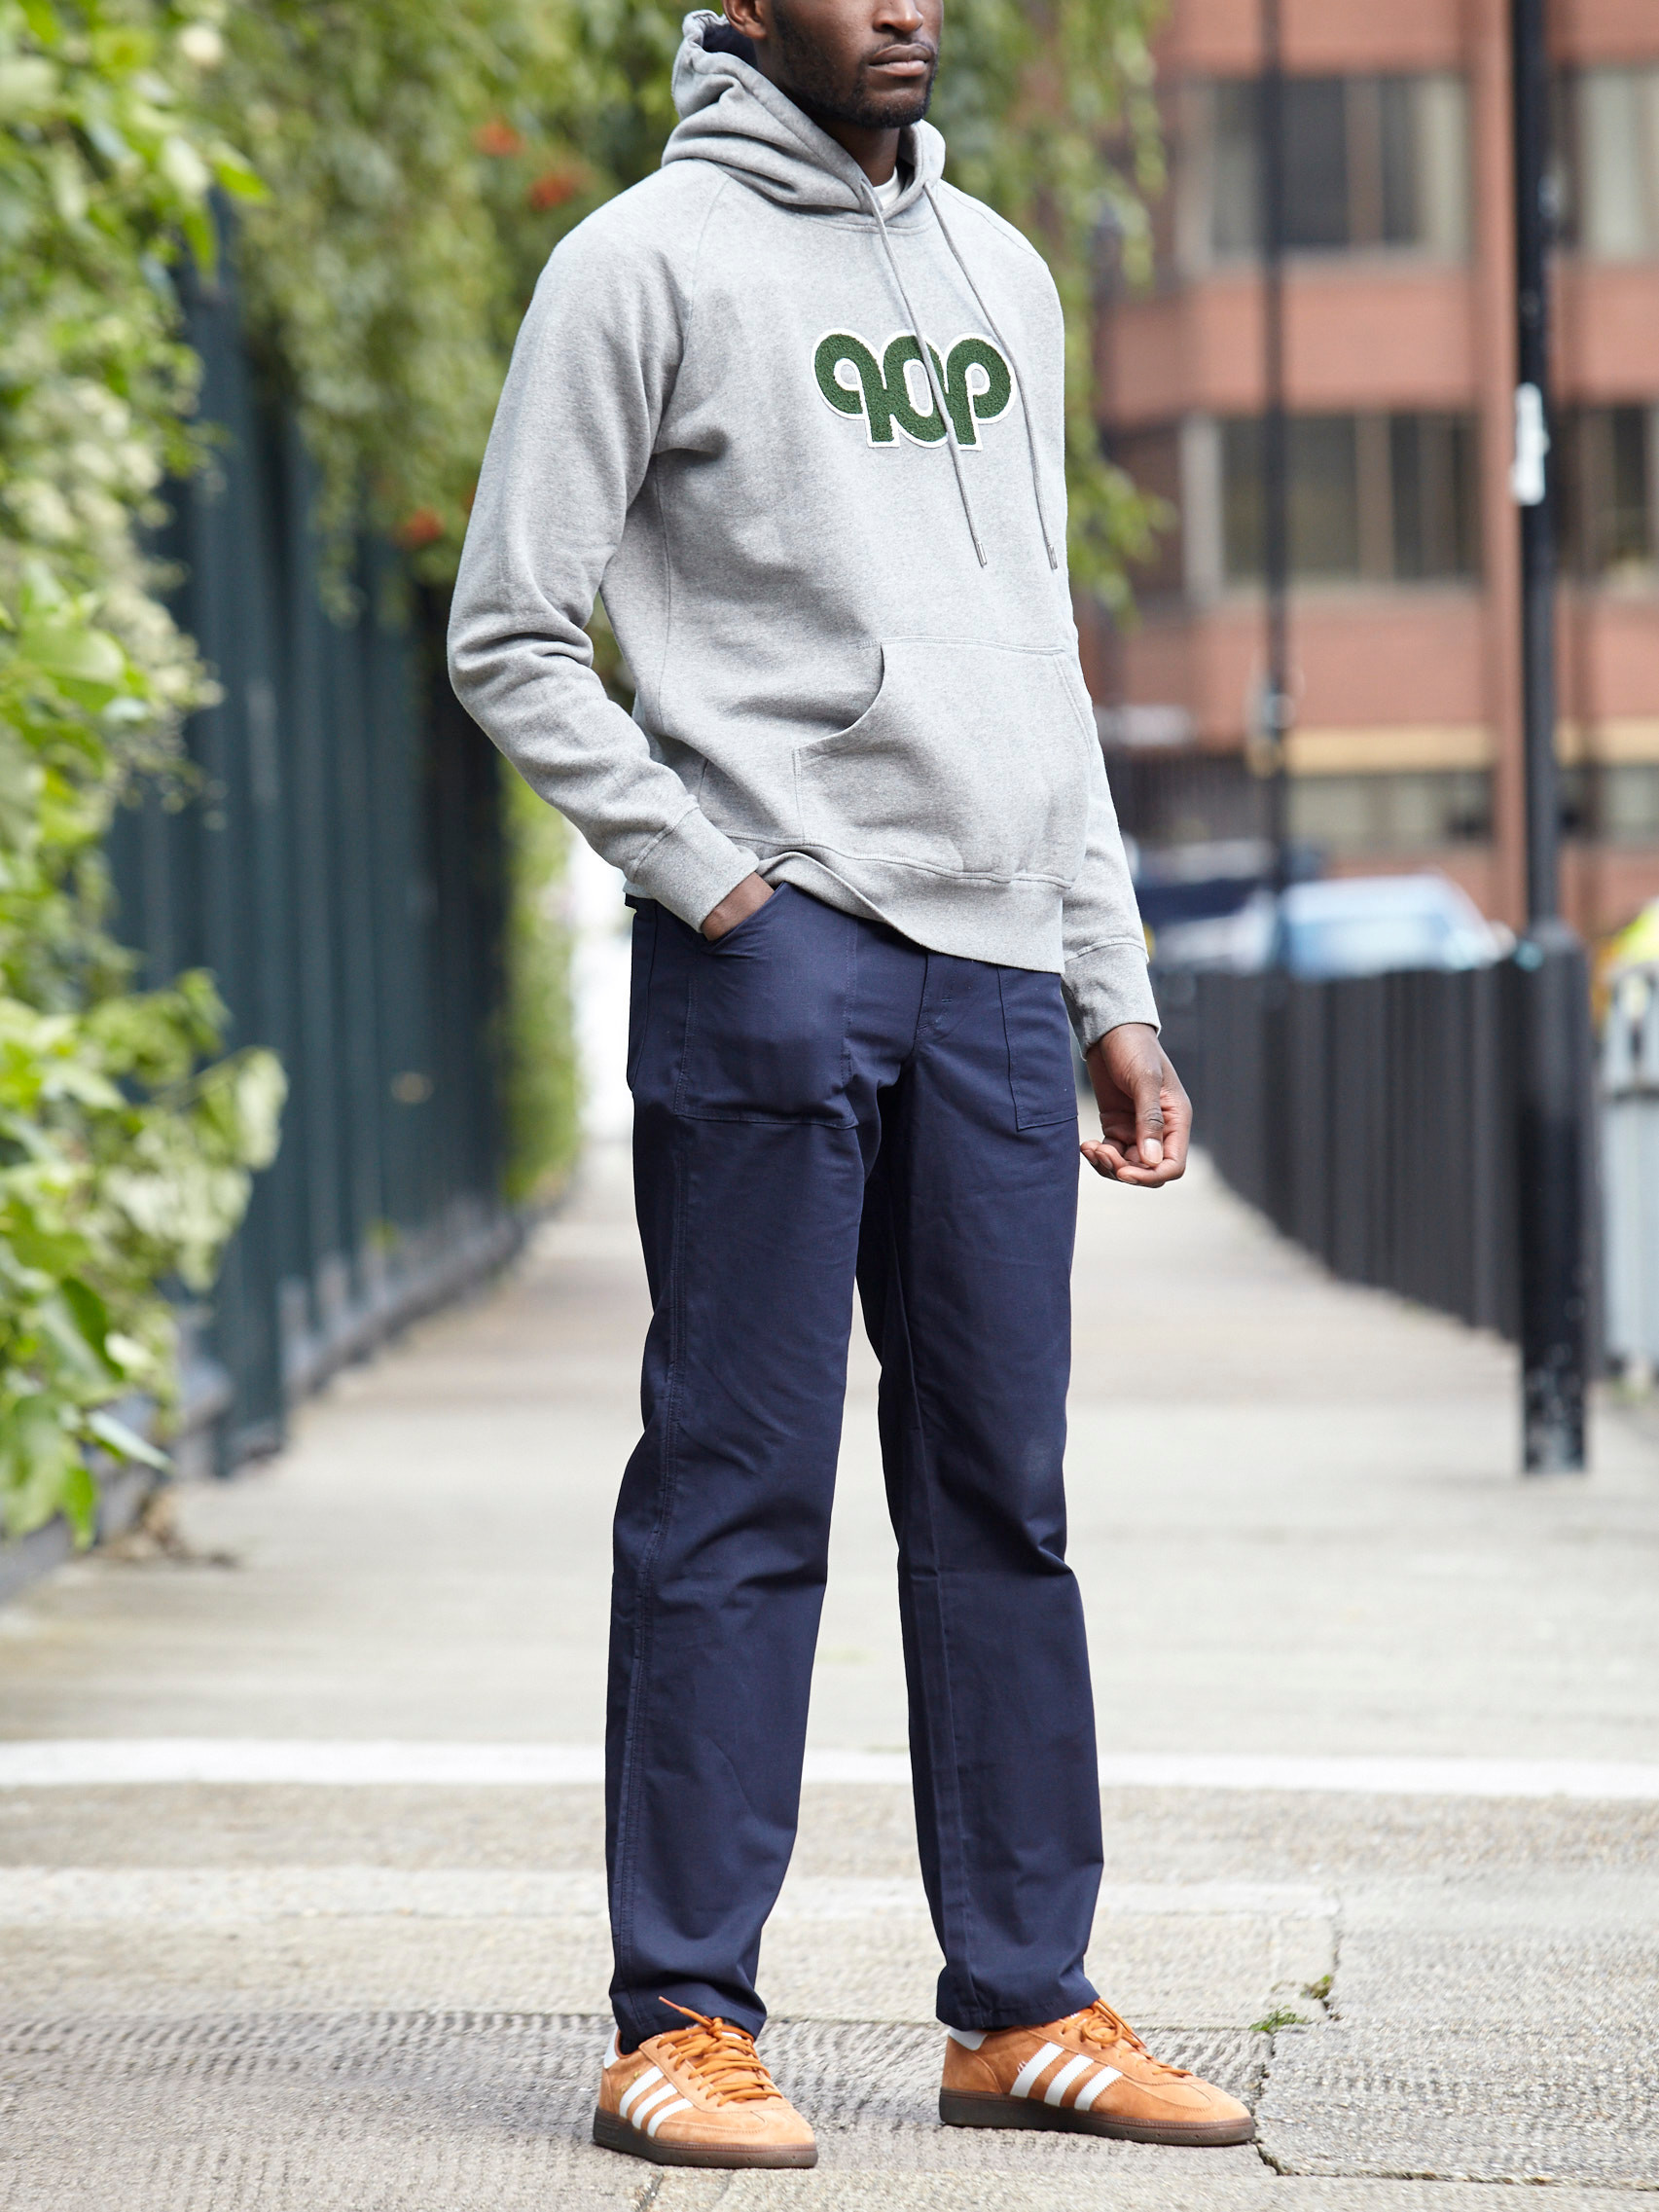 Men's outfit idea for 2021 with logo / printed hoodie, navy chinos, bright sneakers. Suitable for fall.